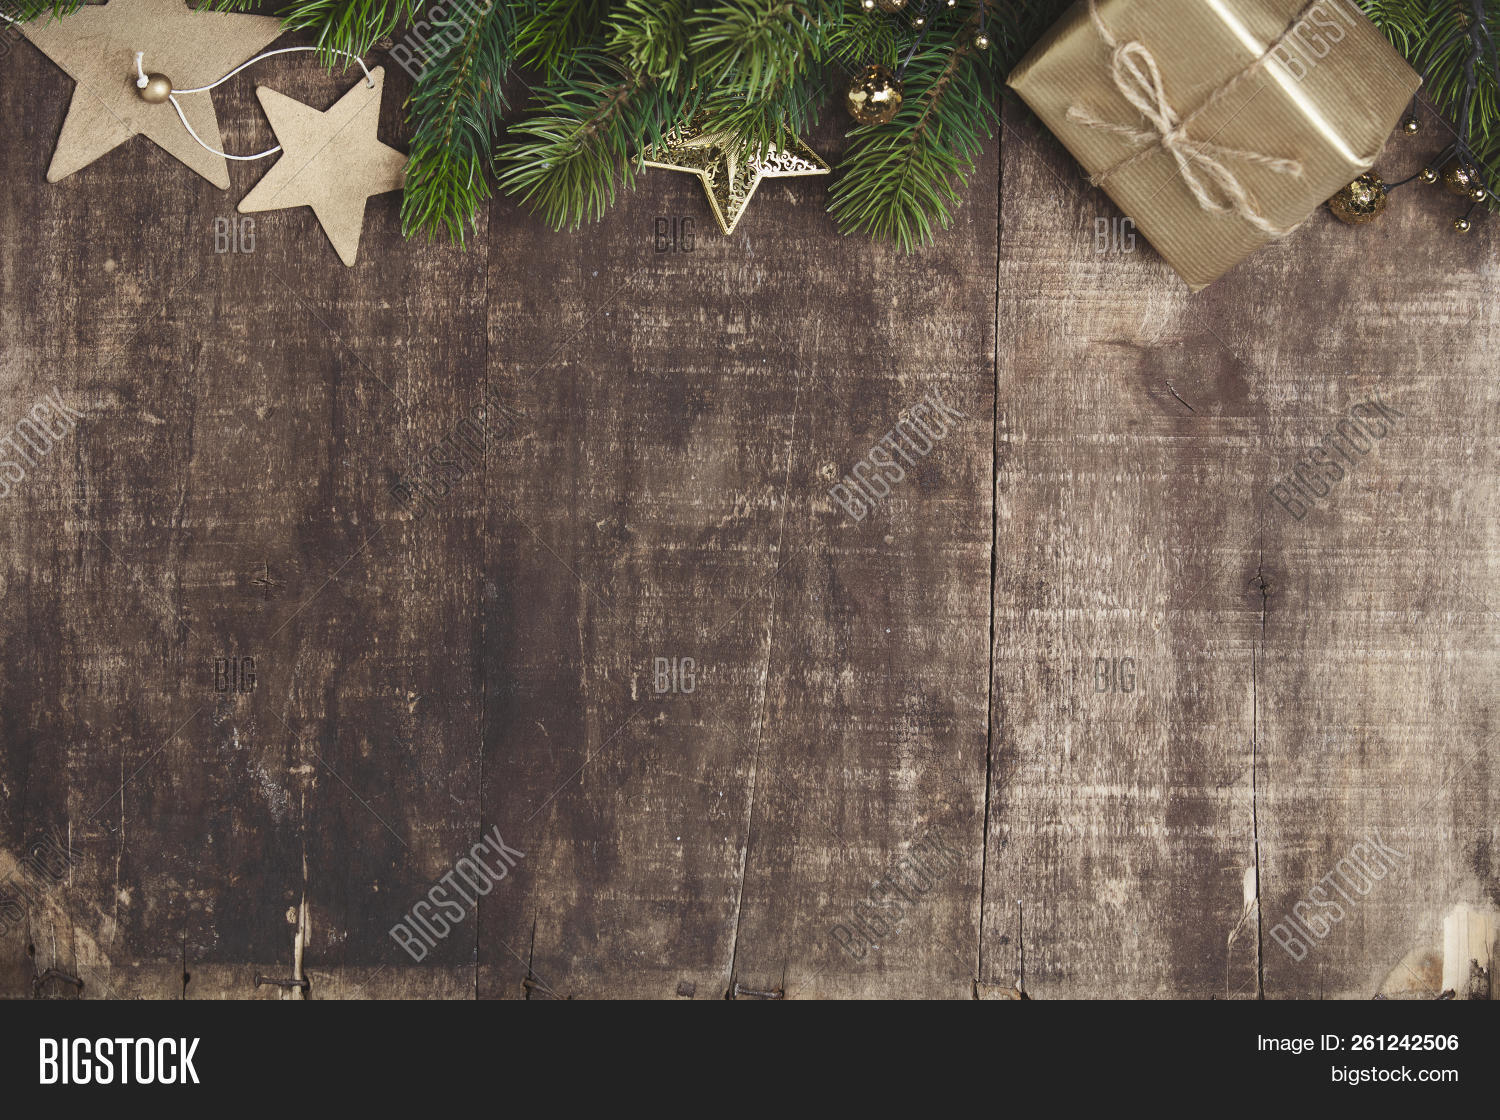 Christmas Wood Background.Christmas Theme Image Photo Free Trial Bigstock